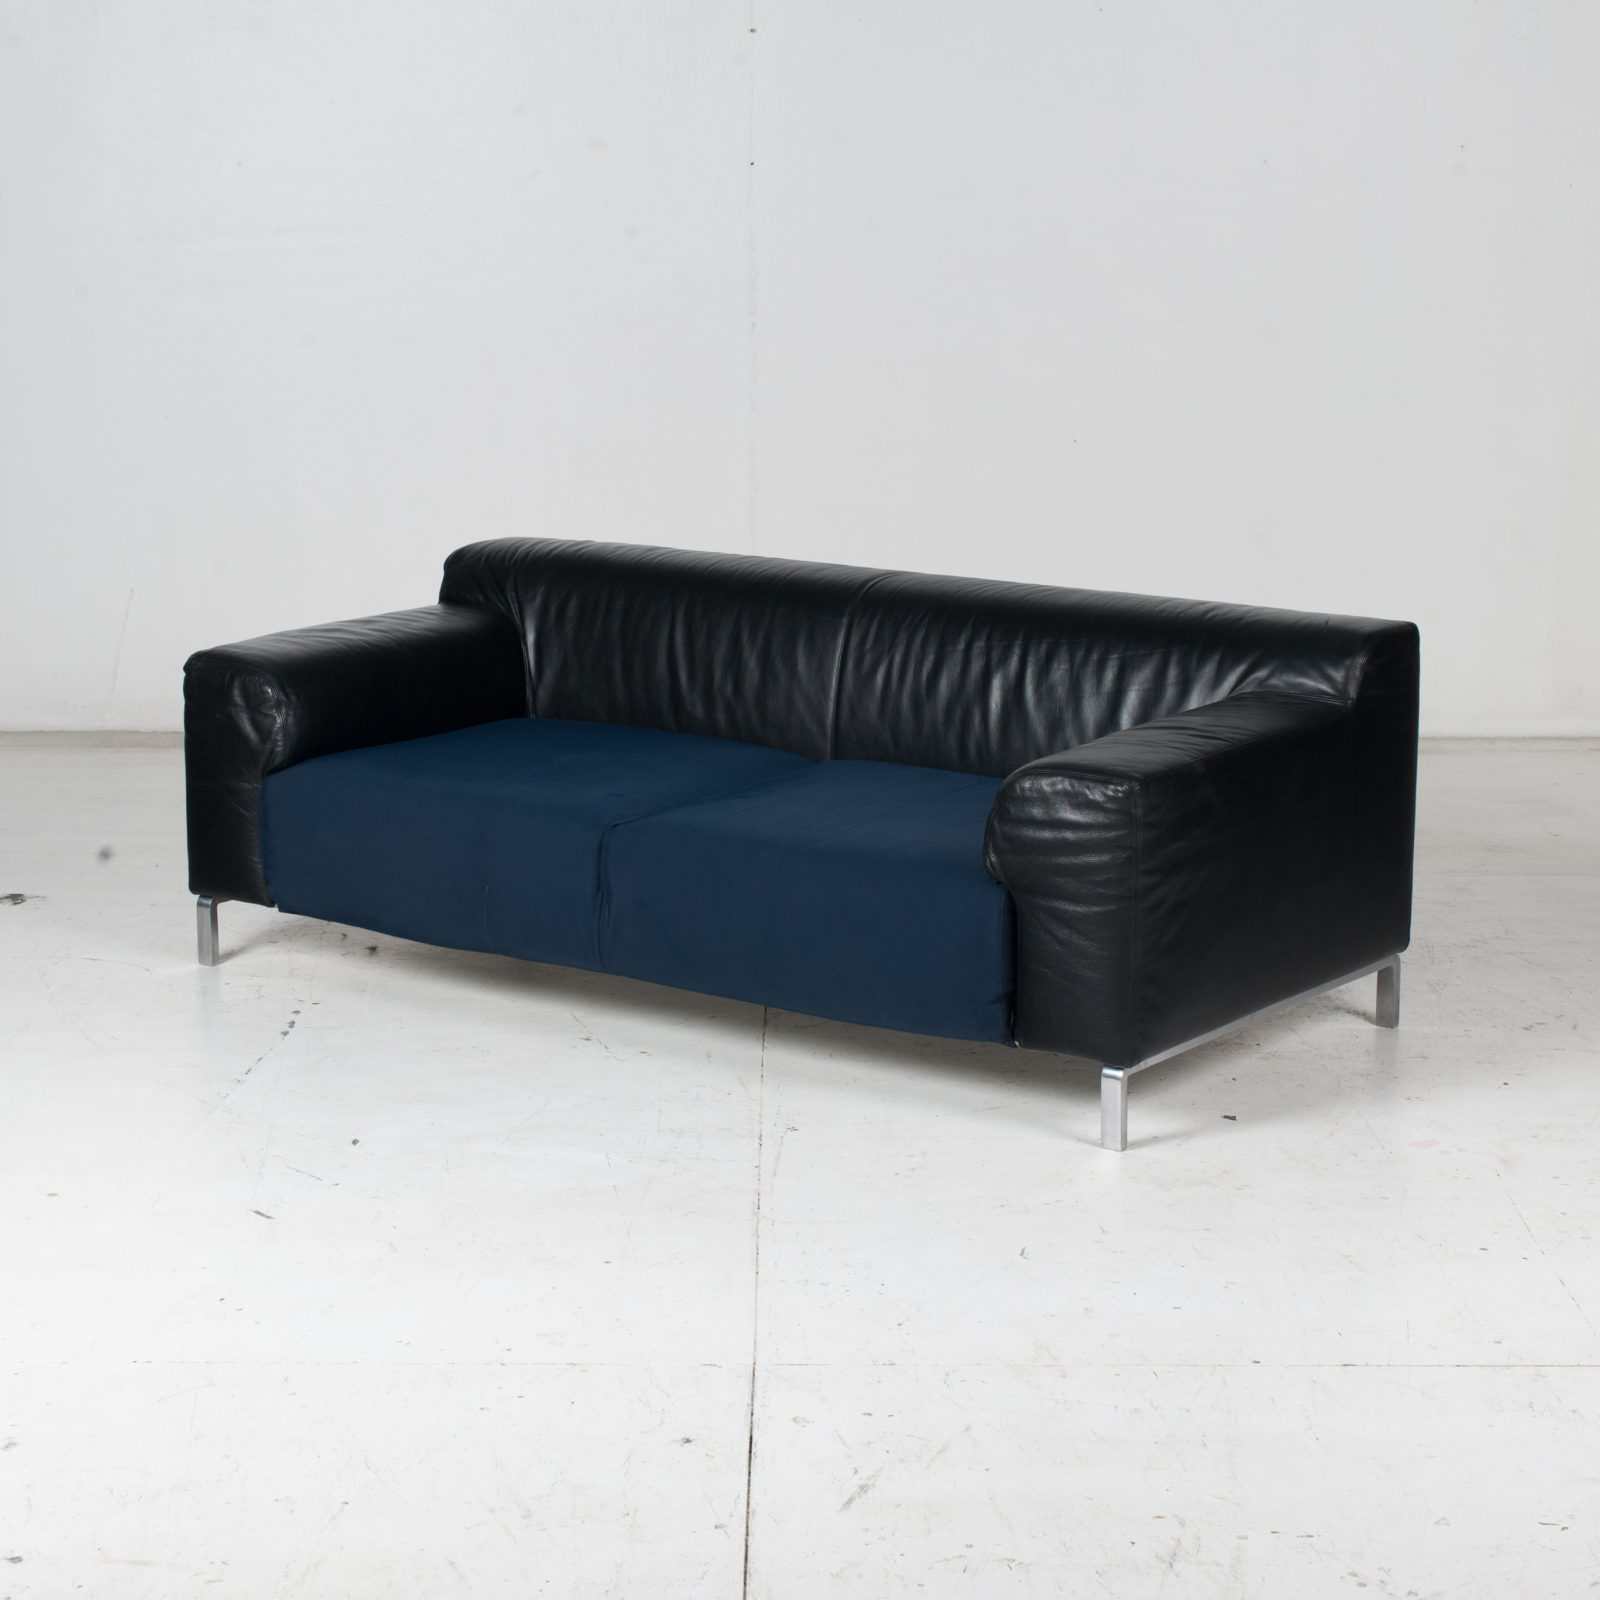 Model Greg 2 Seat Sofa By E. Progetti With Back Upholstered In Black Leather And Seat In Blue Fabric With Chrome Legs, 1960s, Italy High Res